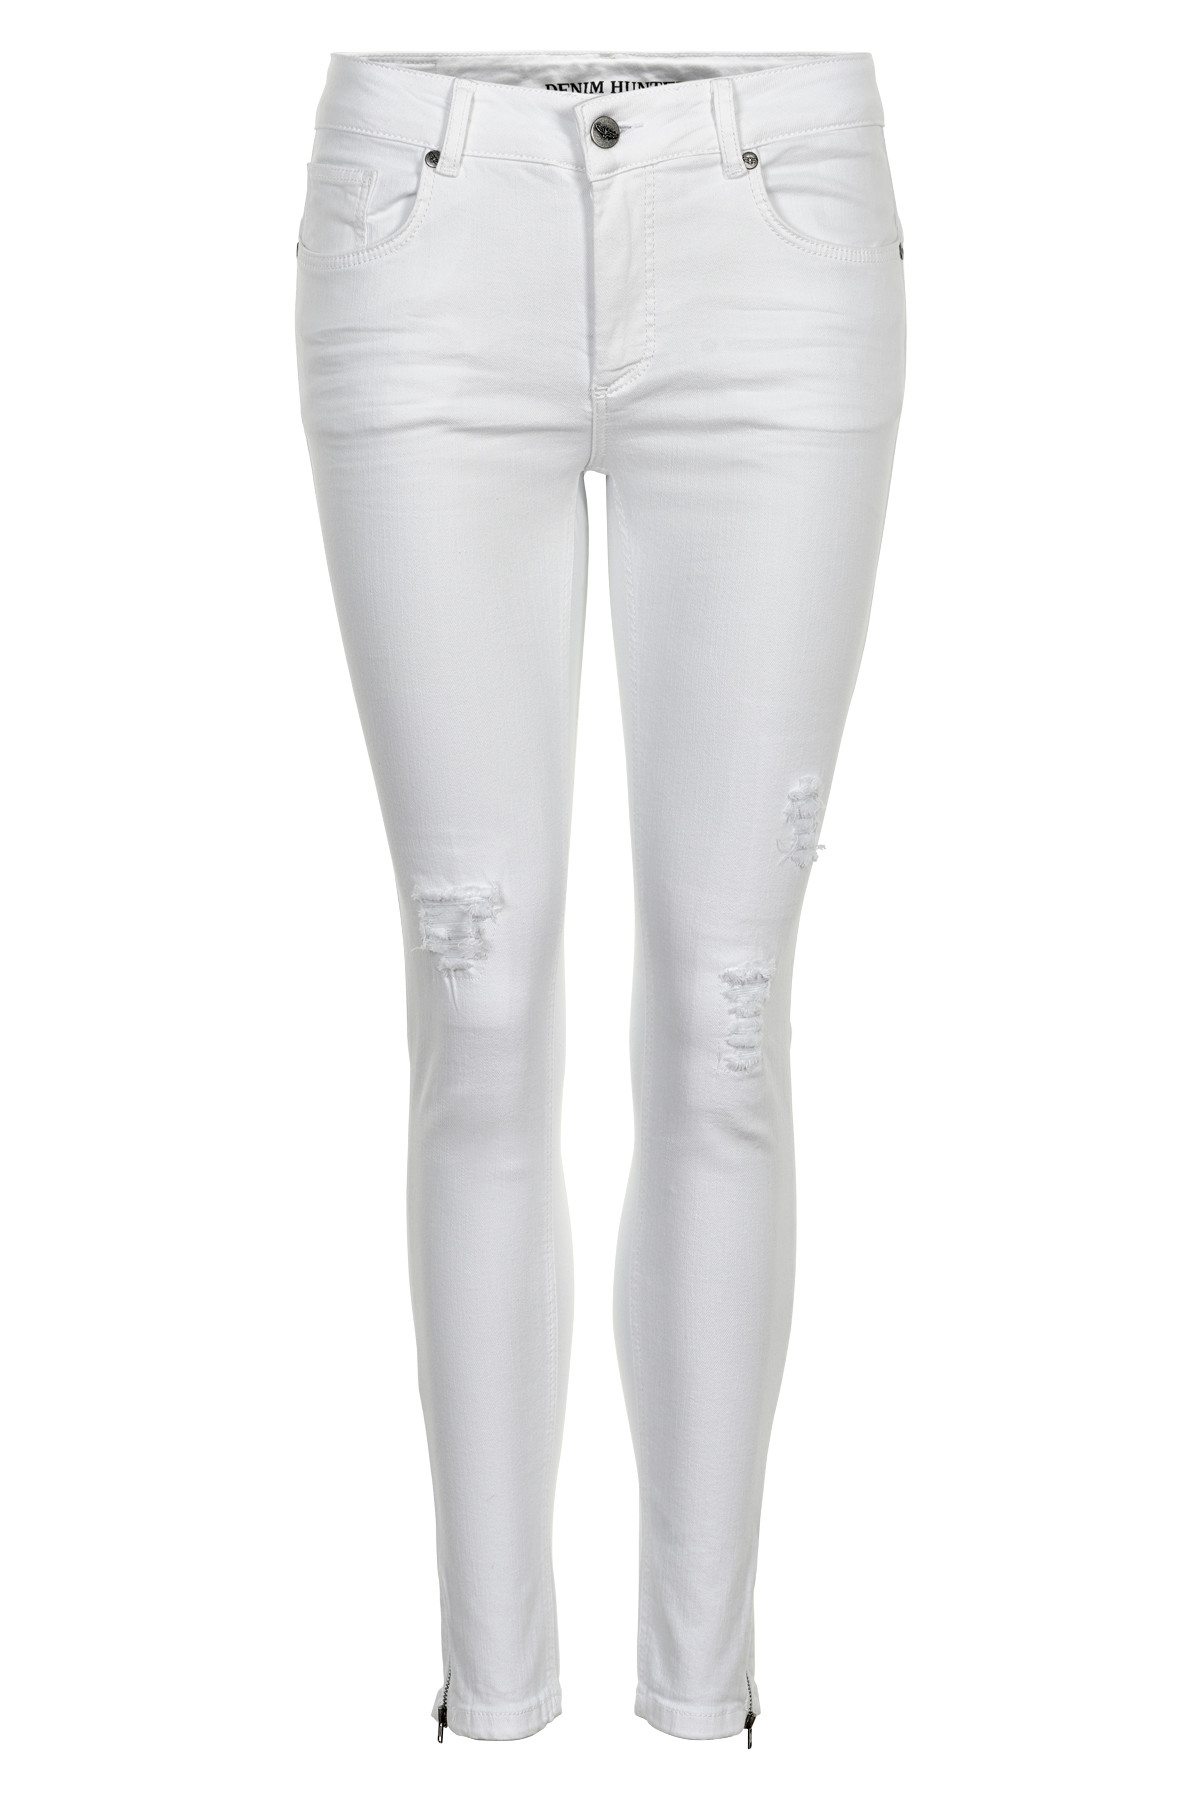 Image of   Denim Hunter CELINA ZIP TORN JEANS 10701894 O (Optical White 30001, 26)